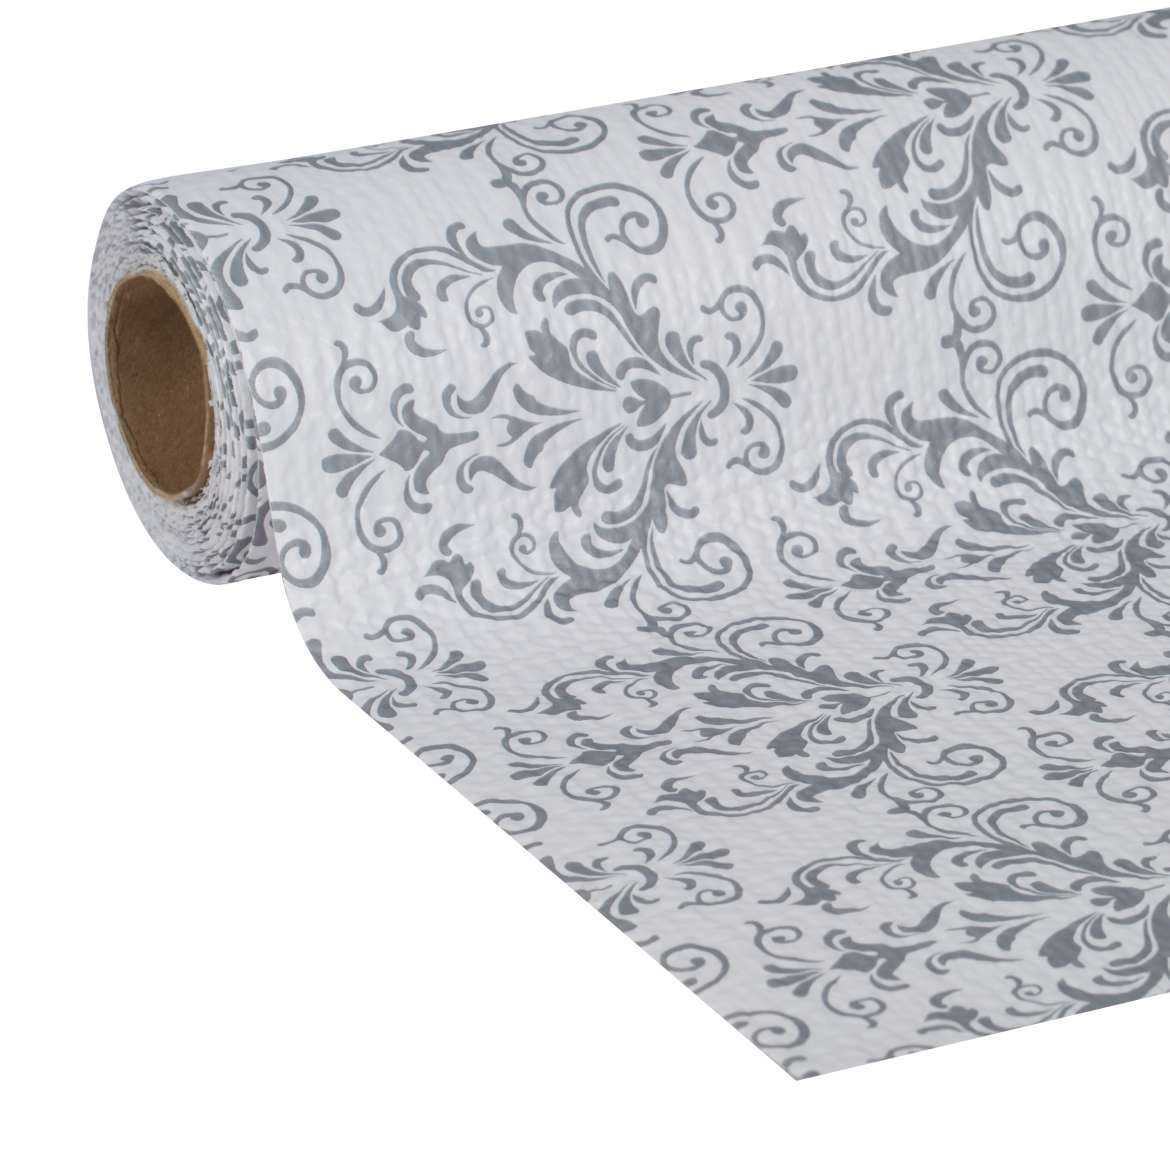 "Duck Brand Smooth Top Non-Adhesive Shelf Liner, 20"" x 6', Grey Damask"